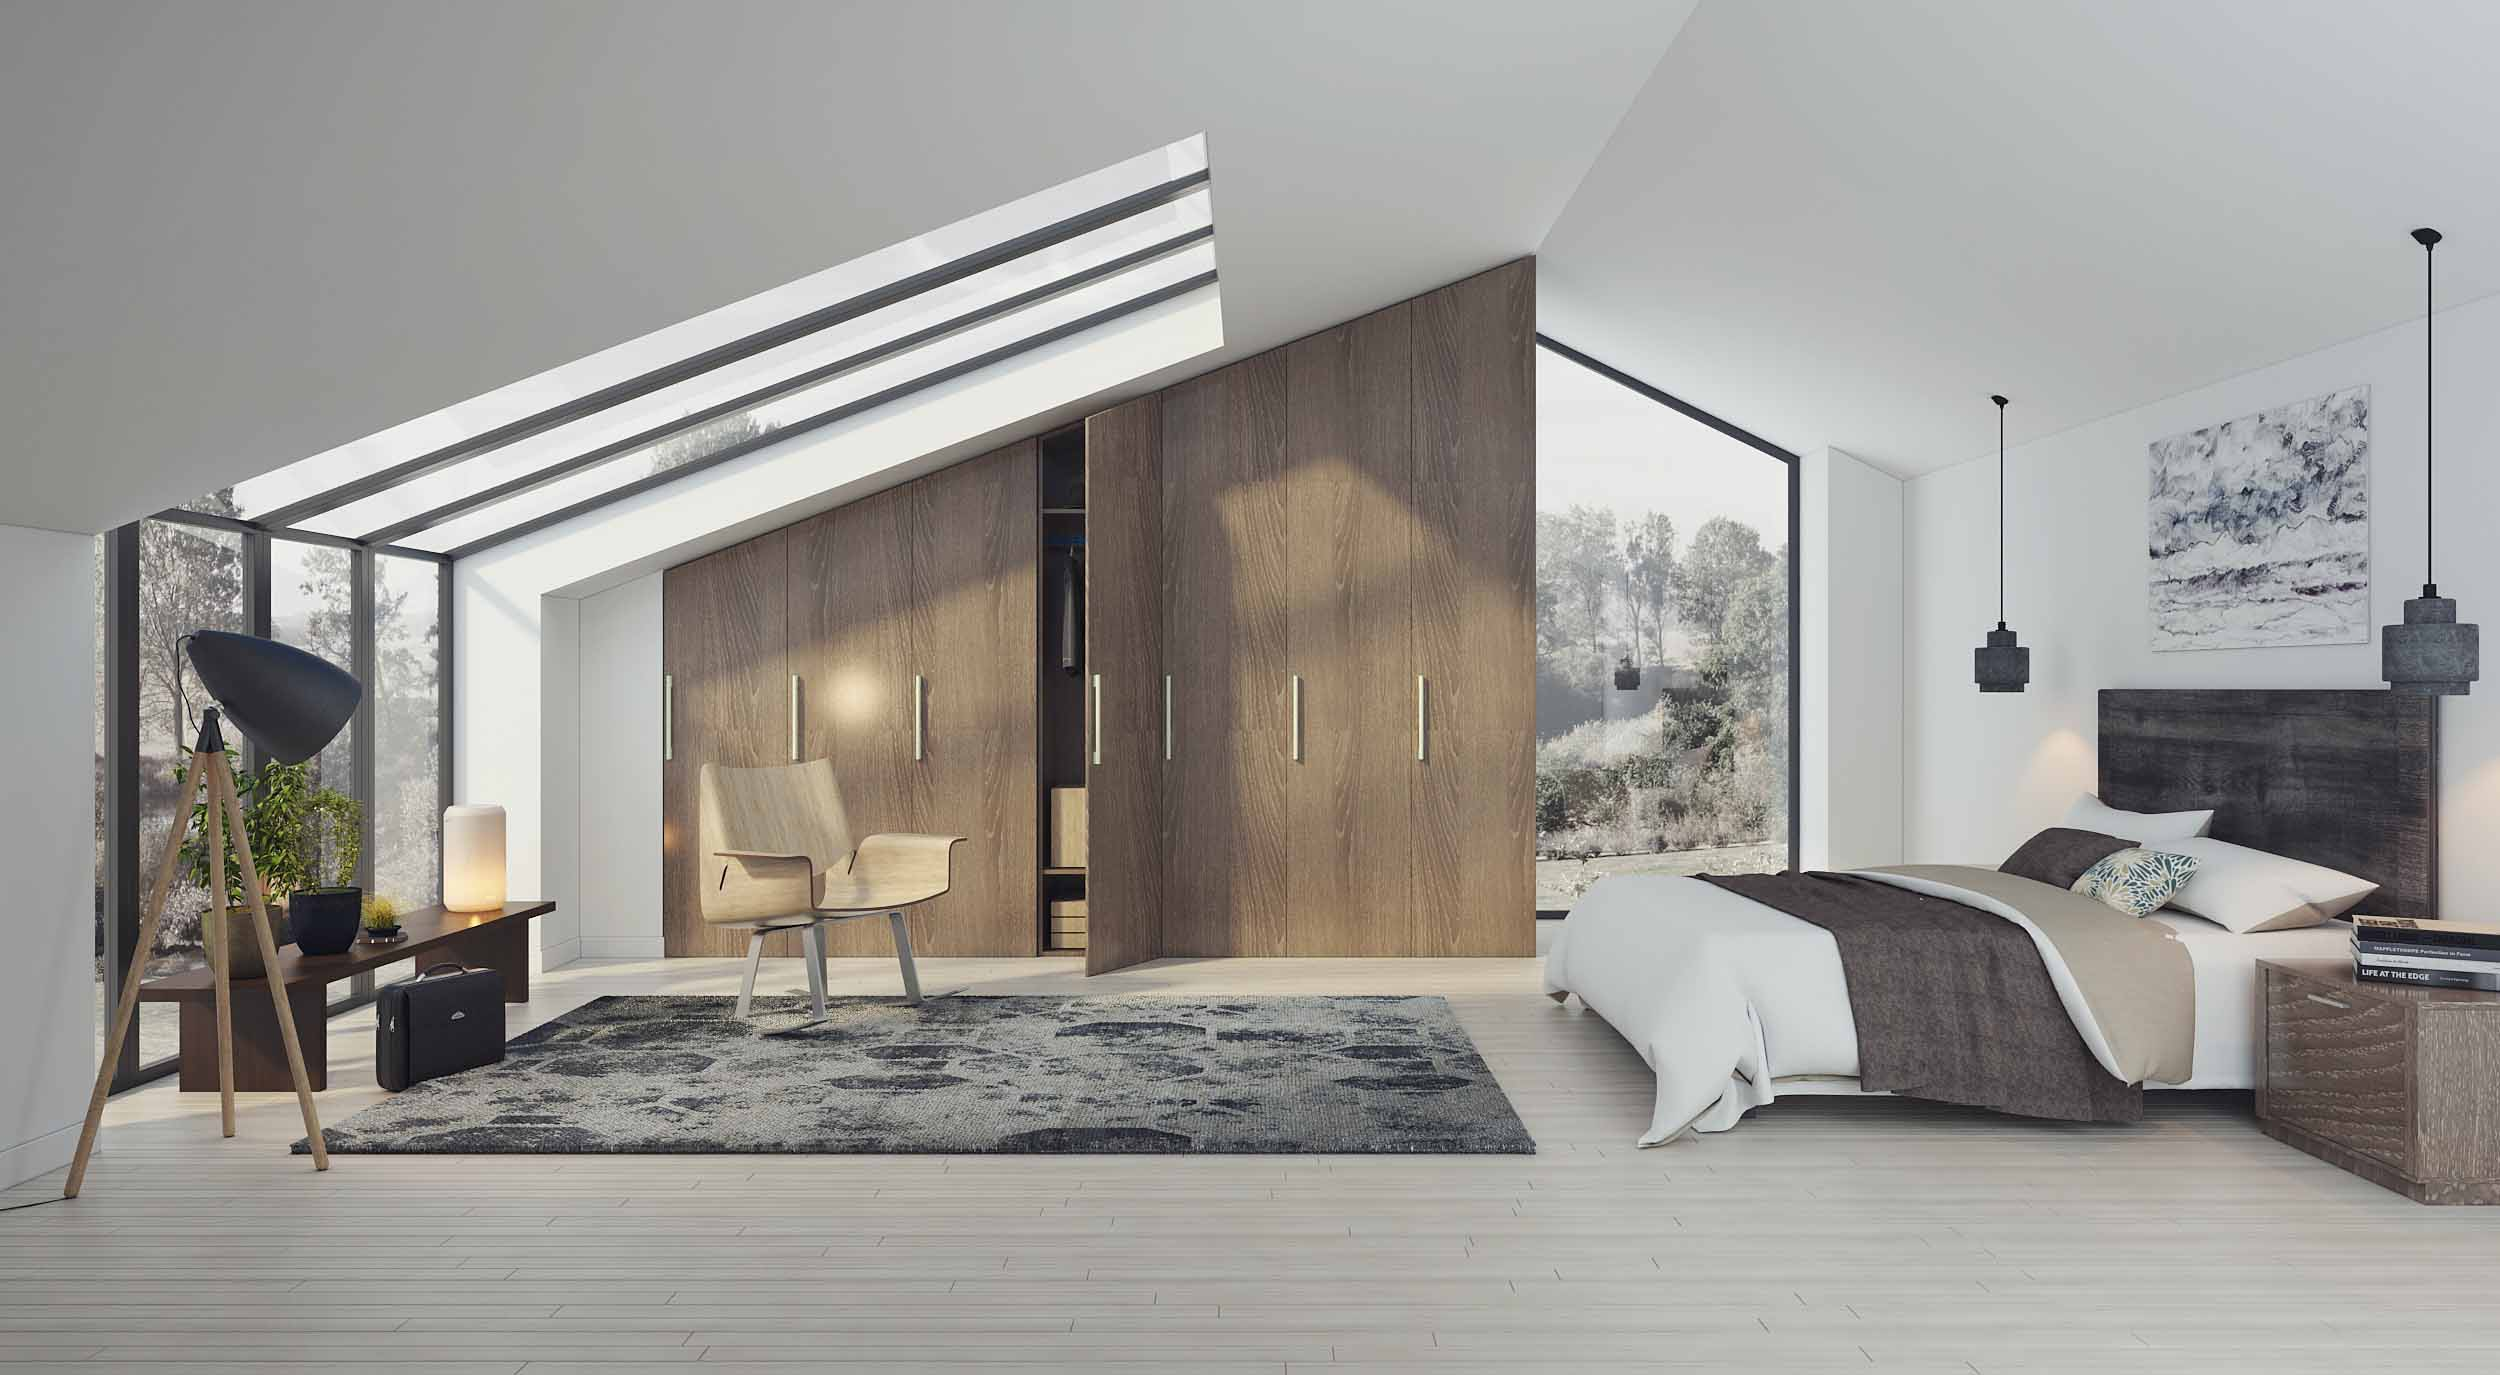 Loft Angled Fitted Wardrobe With Wood Grain Finish